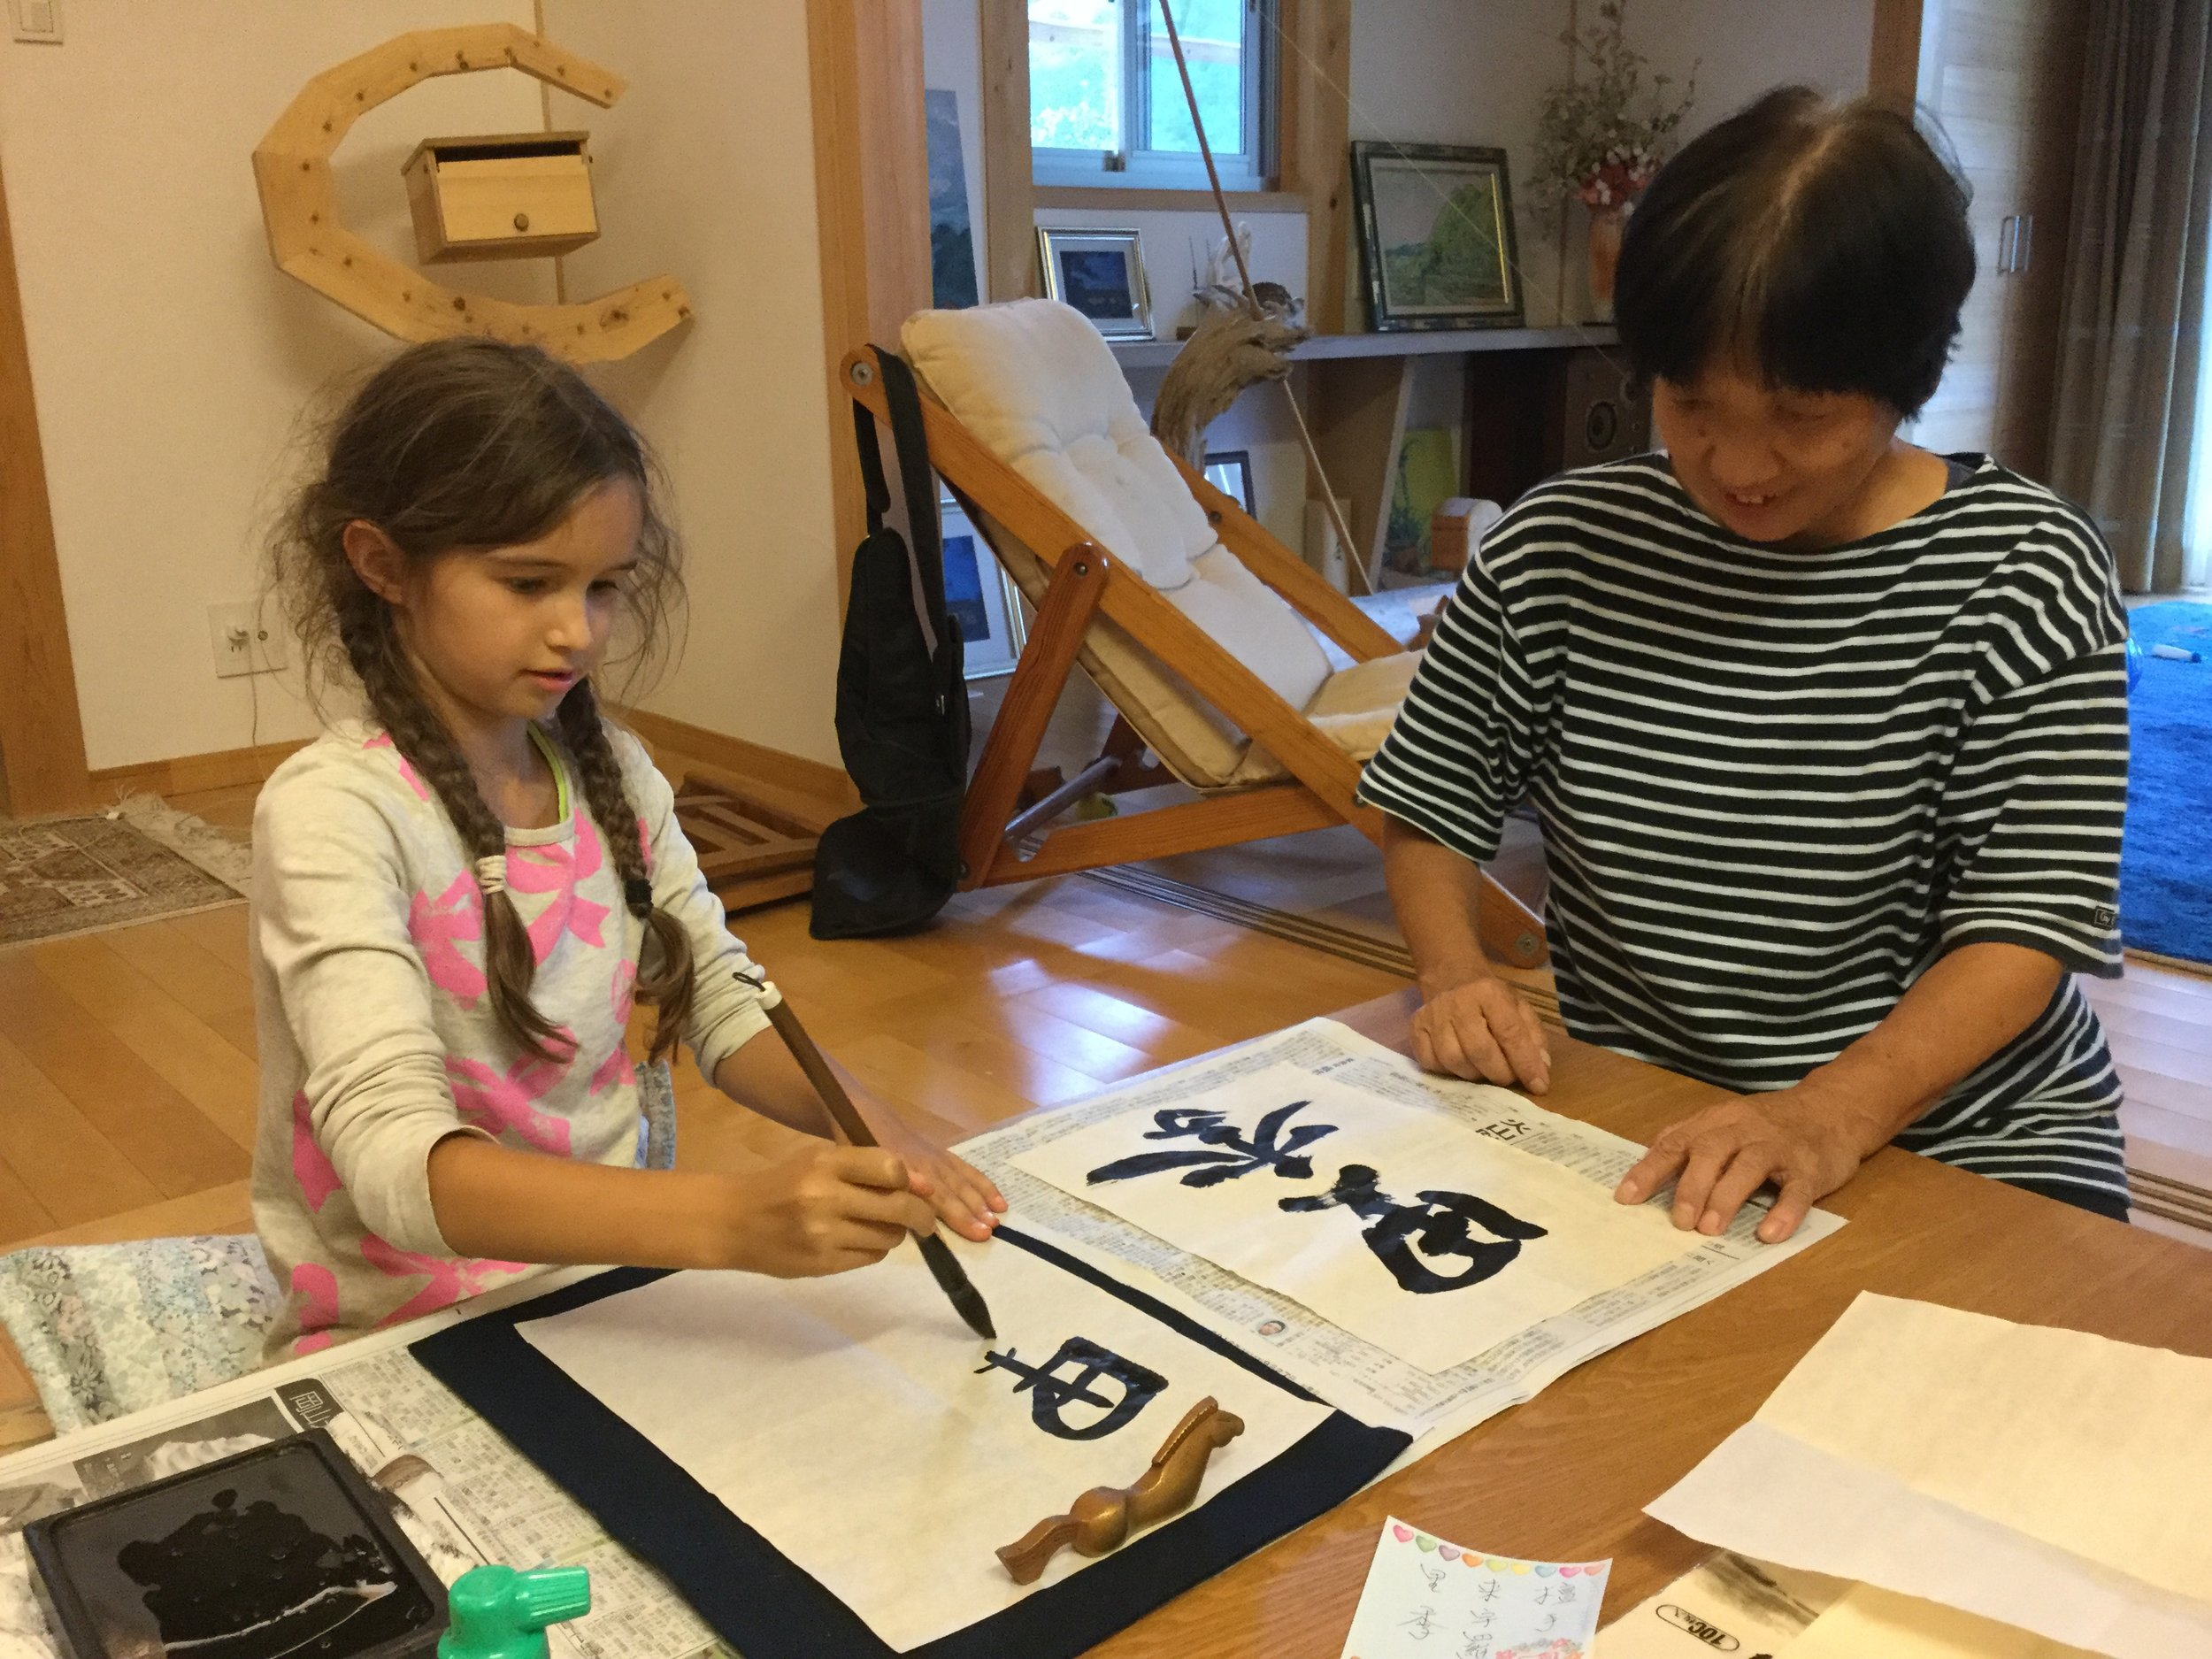 Then it was Lili's turn. The calligraphy paintbrush is made of horsehair, but the best ones are made of human child hair. It is customary in Japan to make a paintbrush of a child's hair in the family.